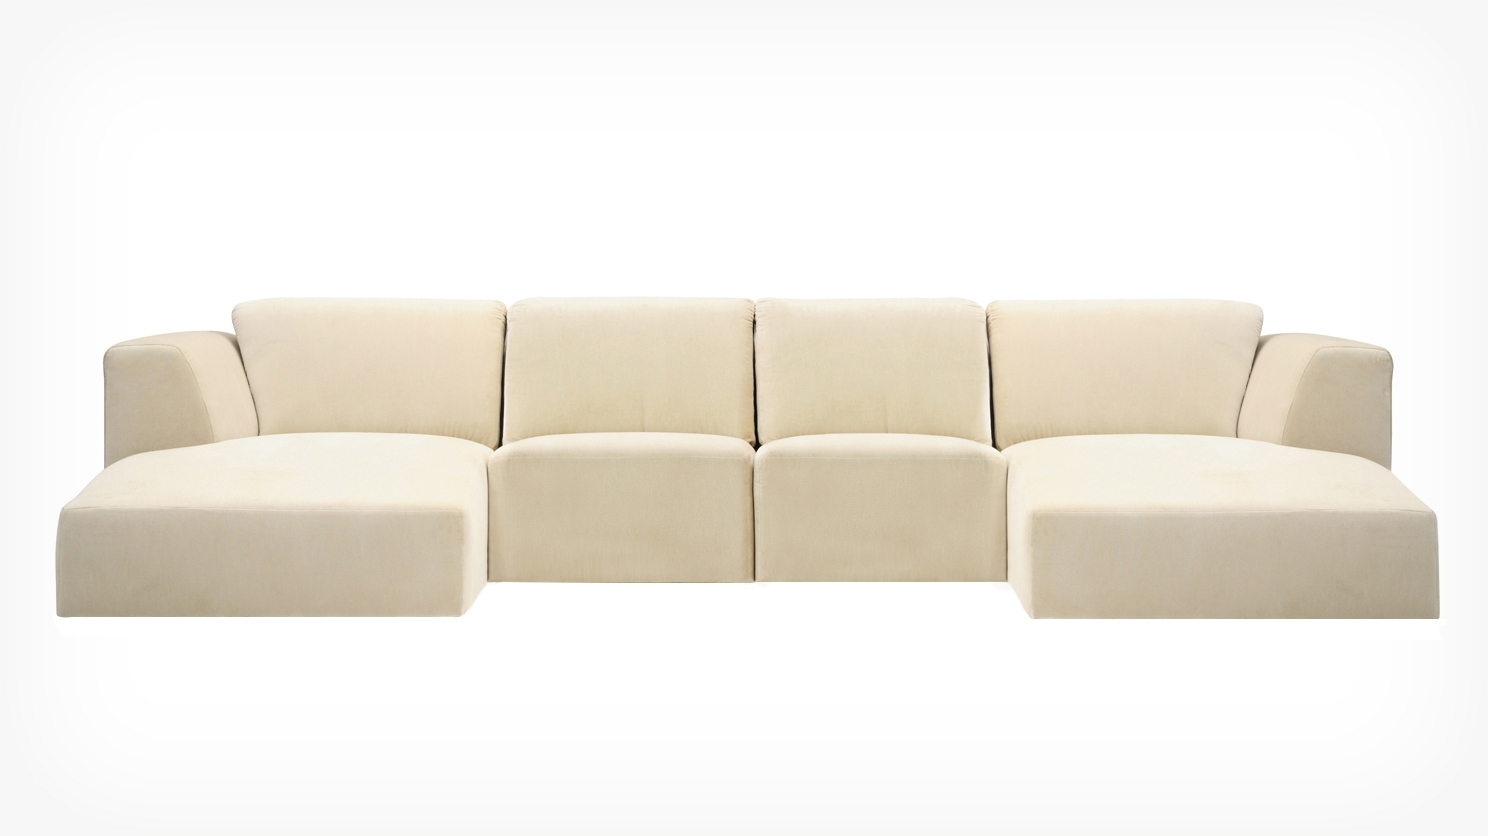 Morten 4 Piece Sectional Sofa With Chaise – Fabric Within 4 Piece Sectional Sofas With Chaise (View 5 of 15)